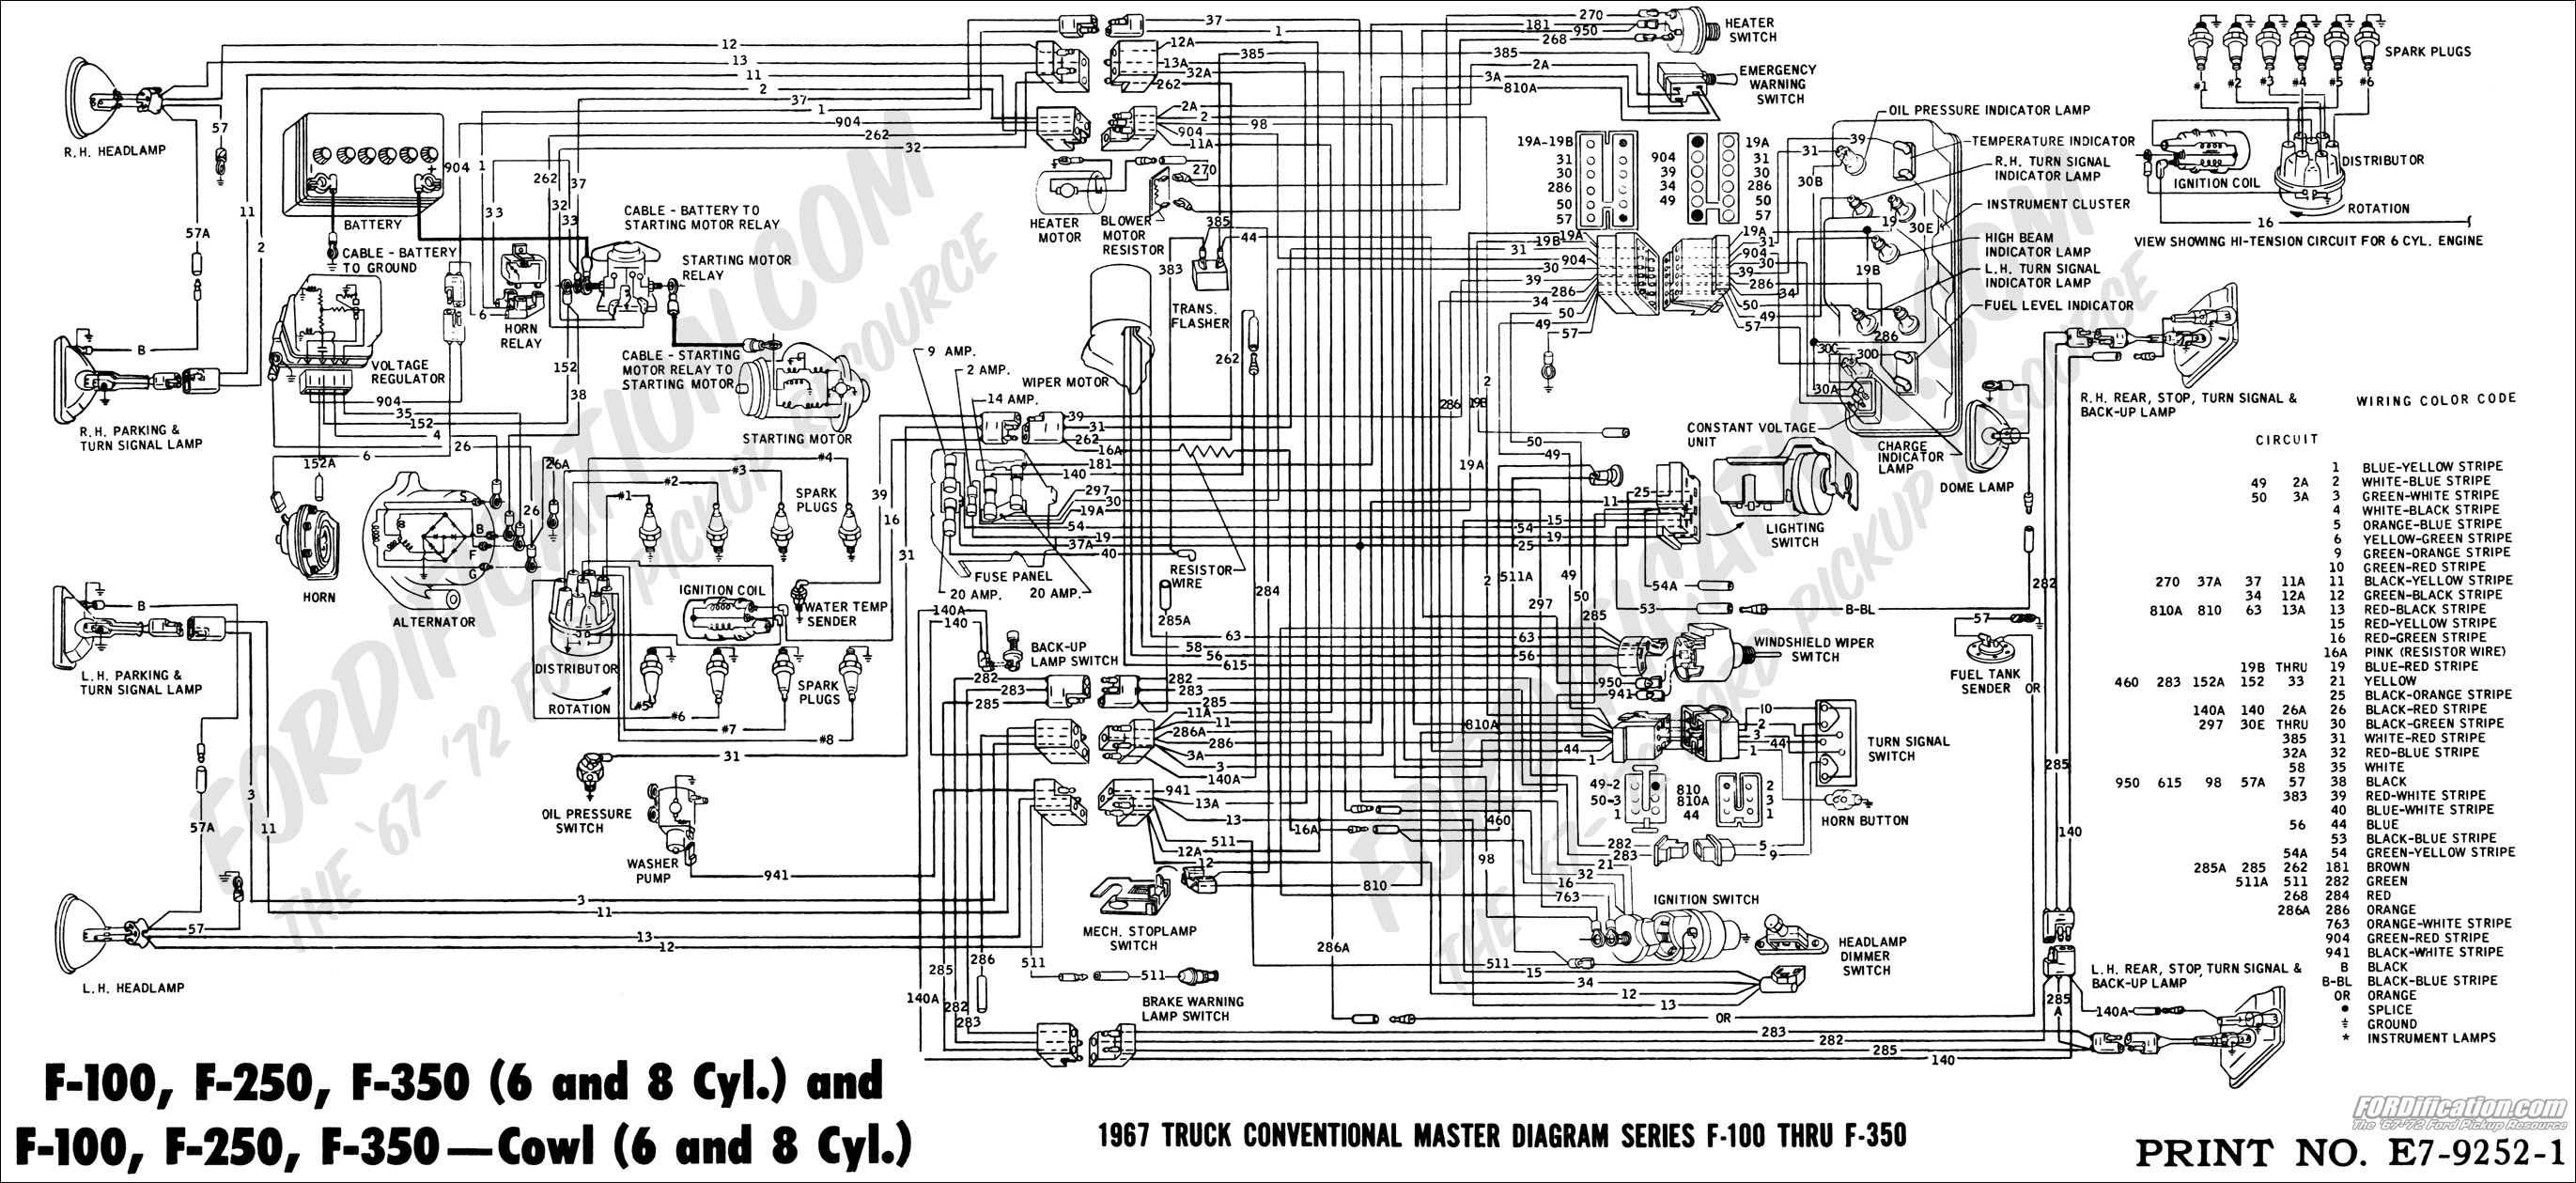 1987 ford e150 wiring diagram schematics wiring diagrams u2022 rh parntesis  co Ford Ranger Ford Ranger